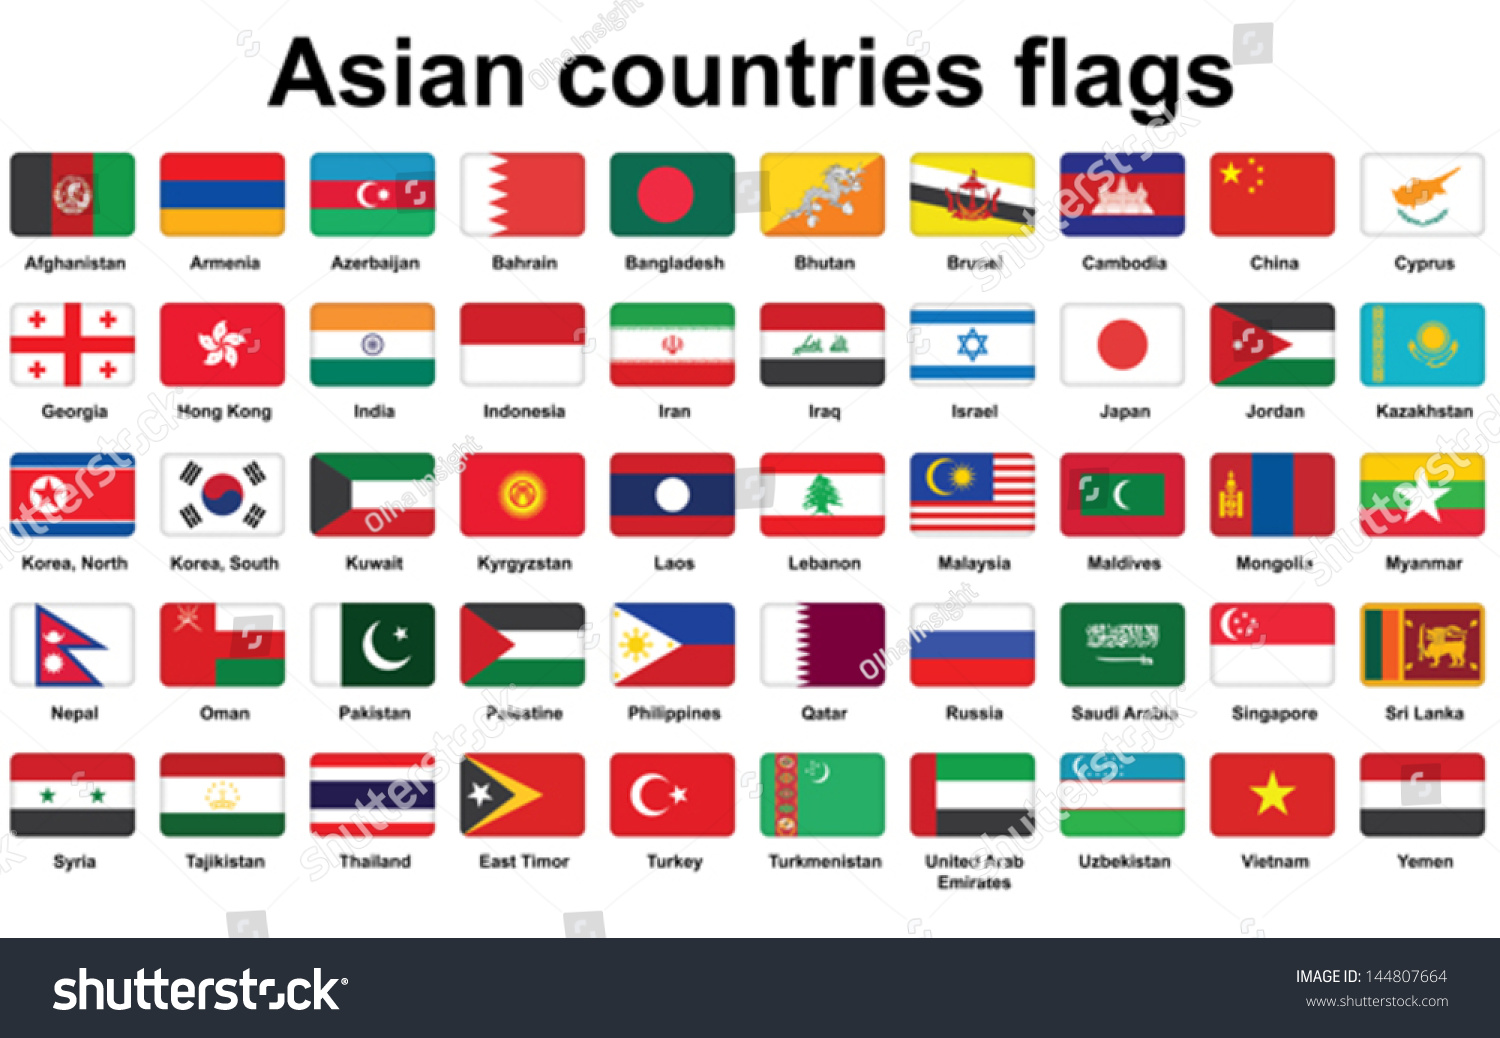 Set Asian Countries Flags Icons Rounded Stock Vector 144807664 ...